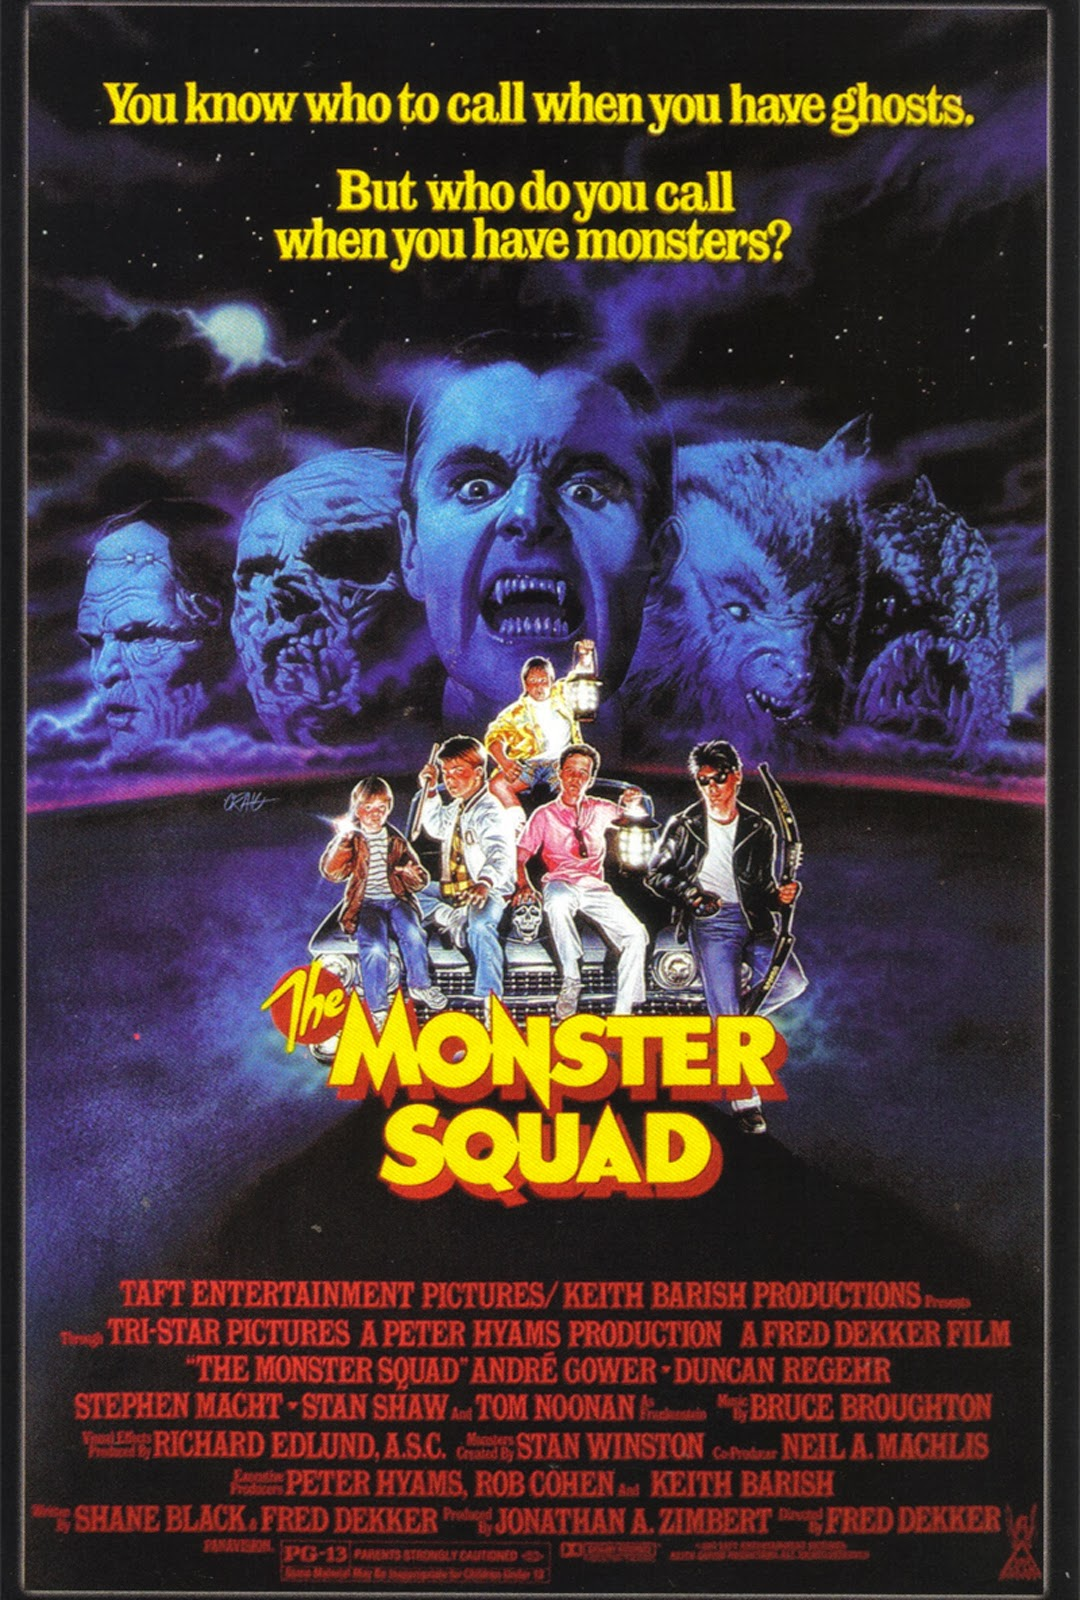 139: The Monster Squad